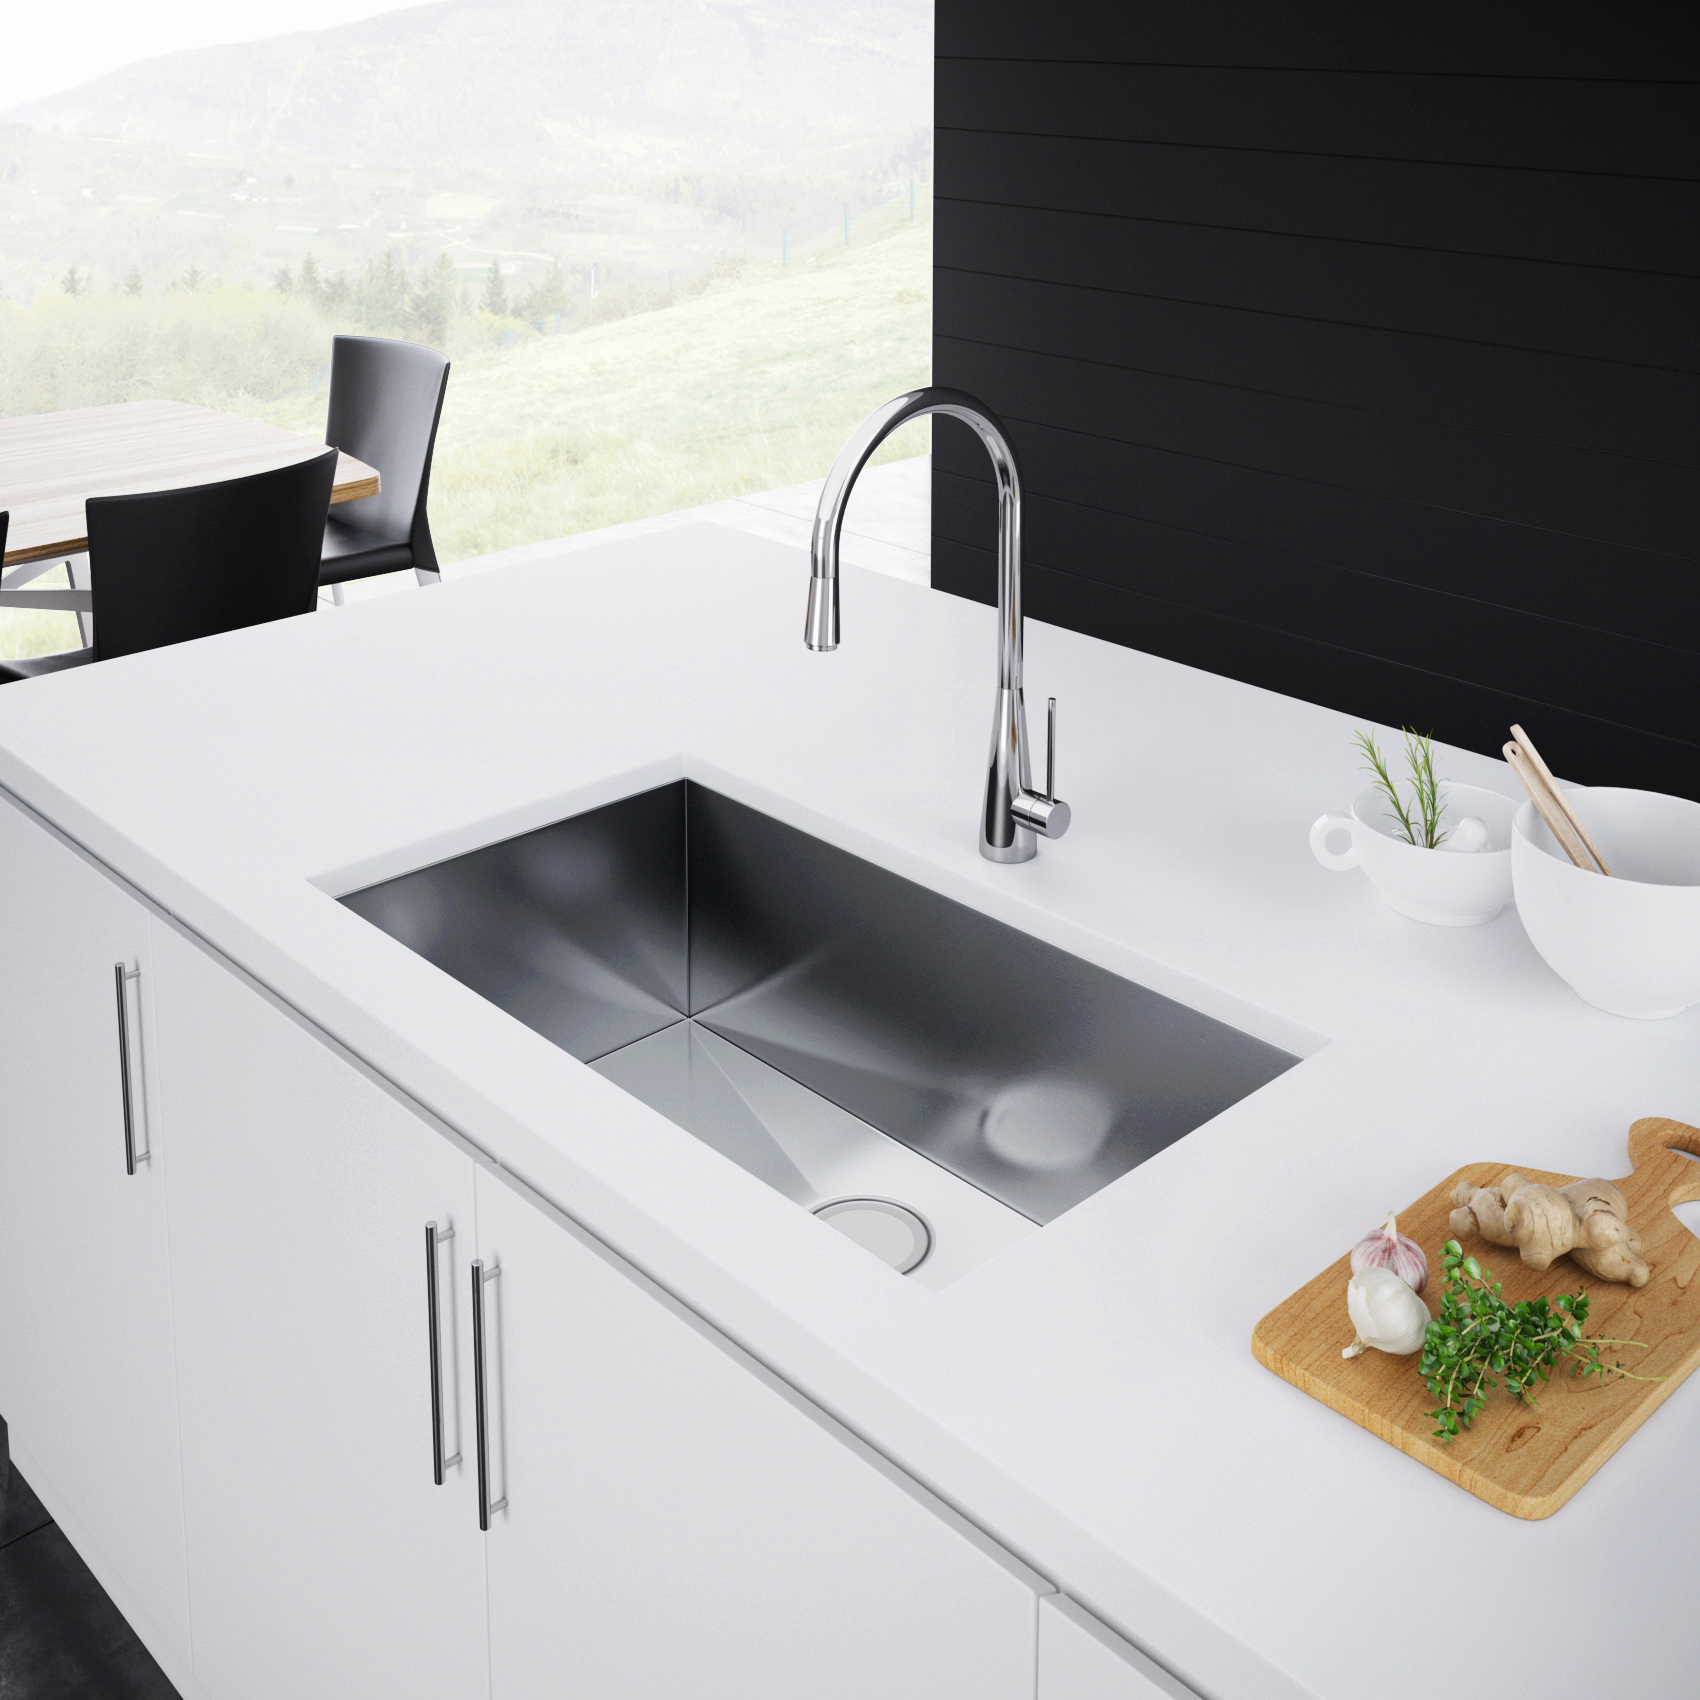 Exclusive Heritage 33 X 19 Single Bowl Undermount Stainless Steel